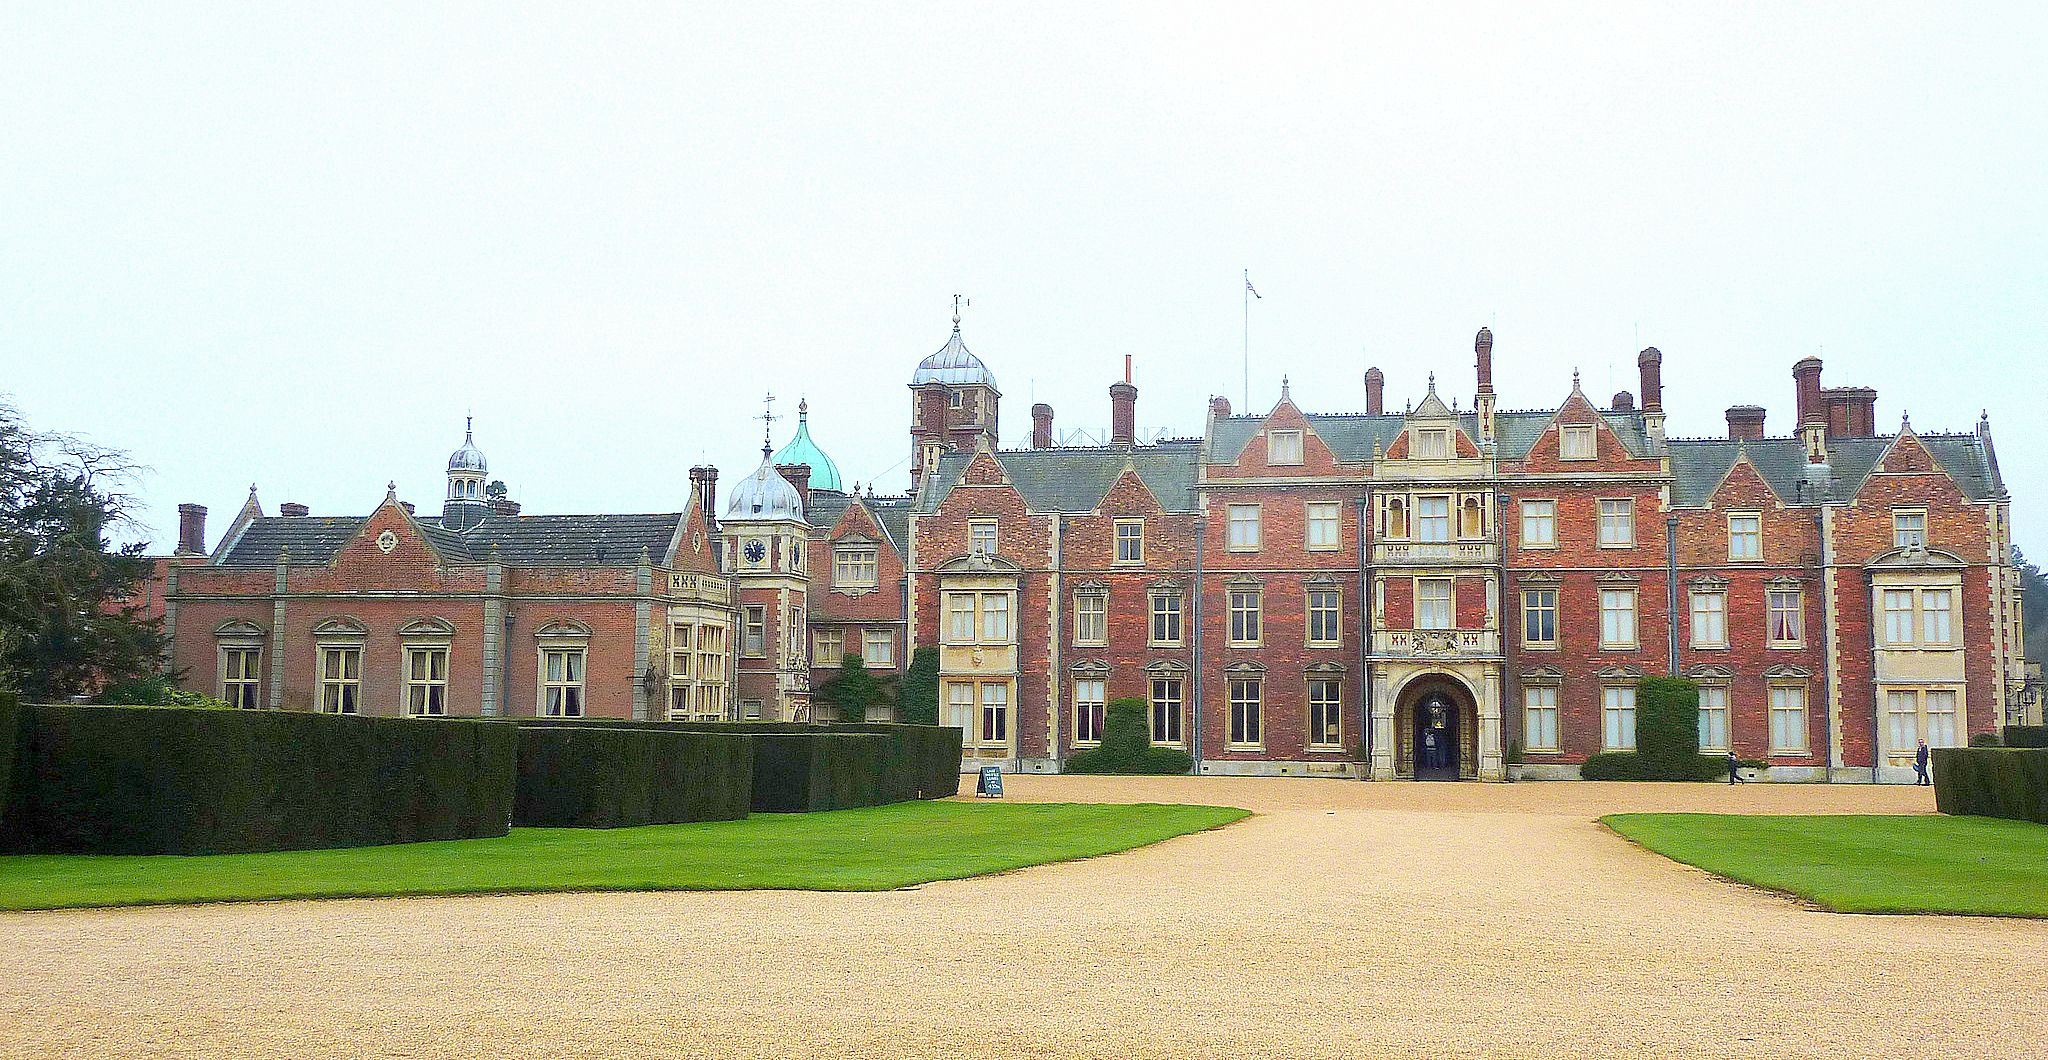 After Edward Vii Added The Two Wings And 18 Bedrooms To Second Floor Major Alterations At Sandringham Stopped